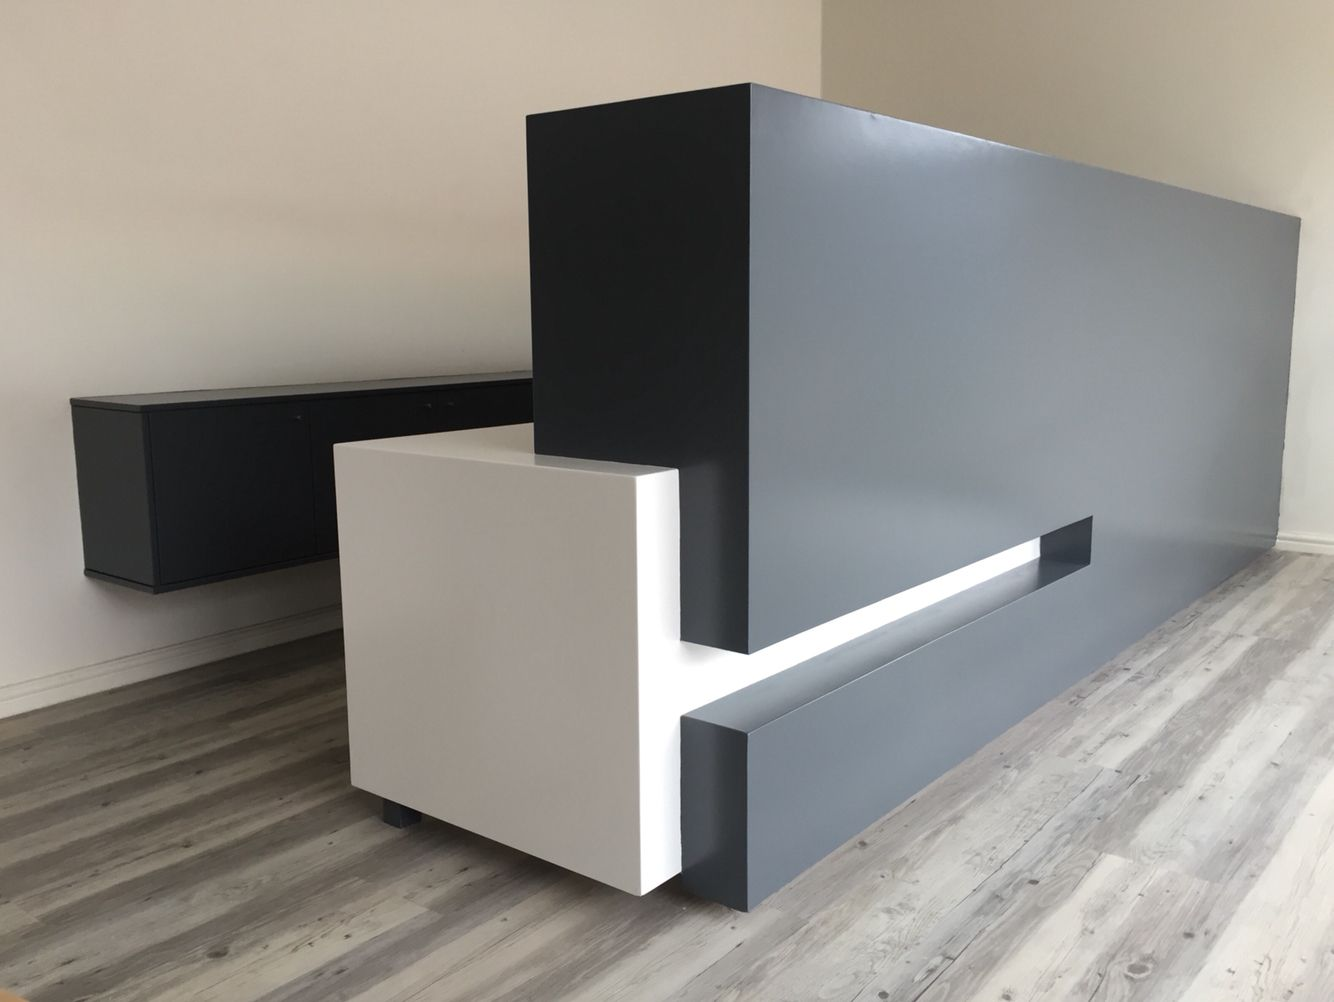 Reception space designed and manufactured by Stretford